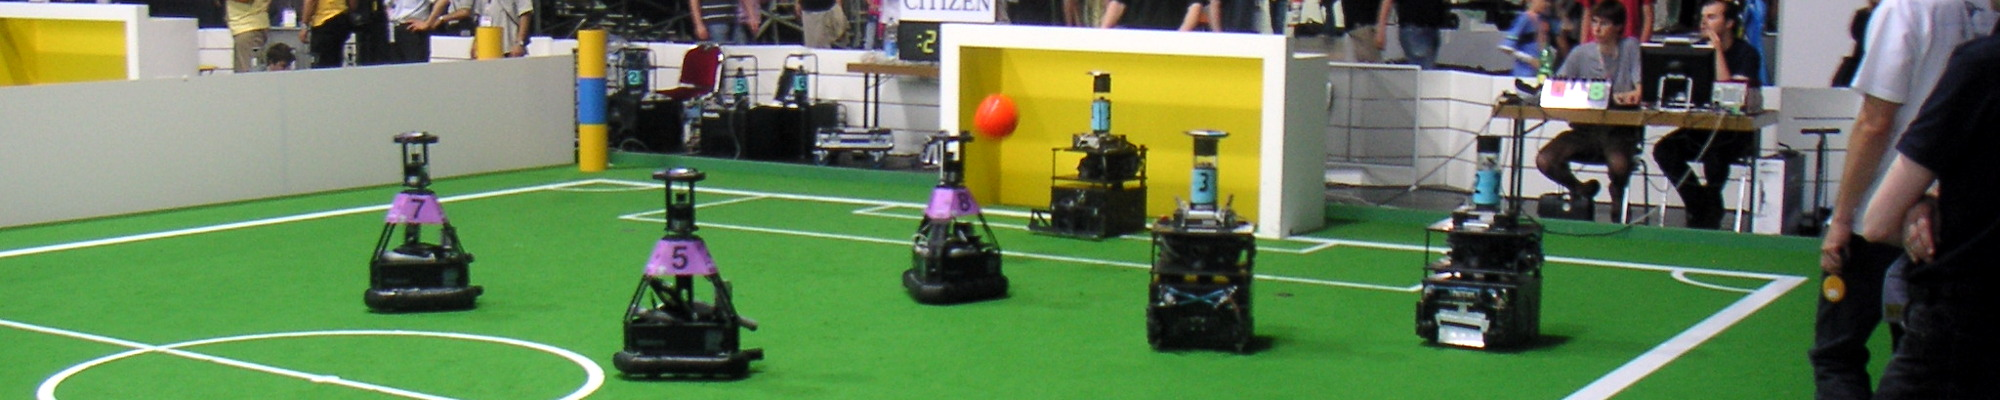 AllemaniACs' Hector defending the goal (RoboCup 2006, Bremen, Germany)